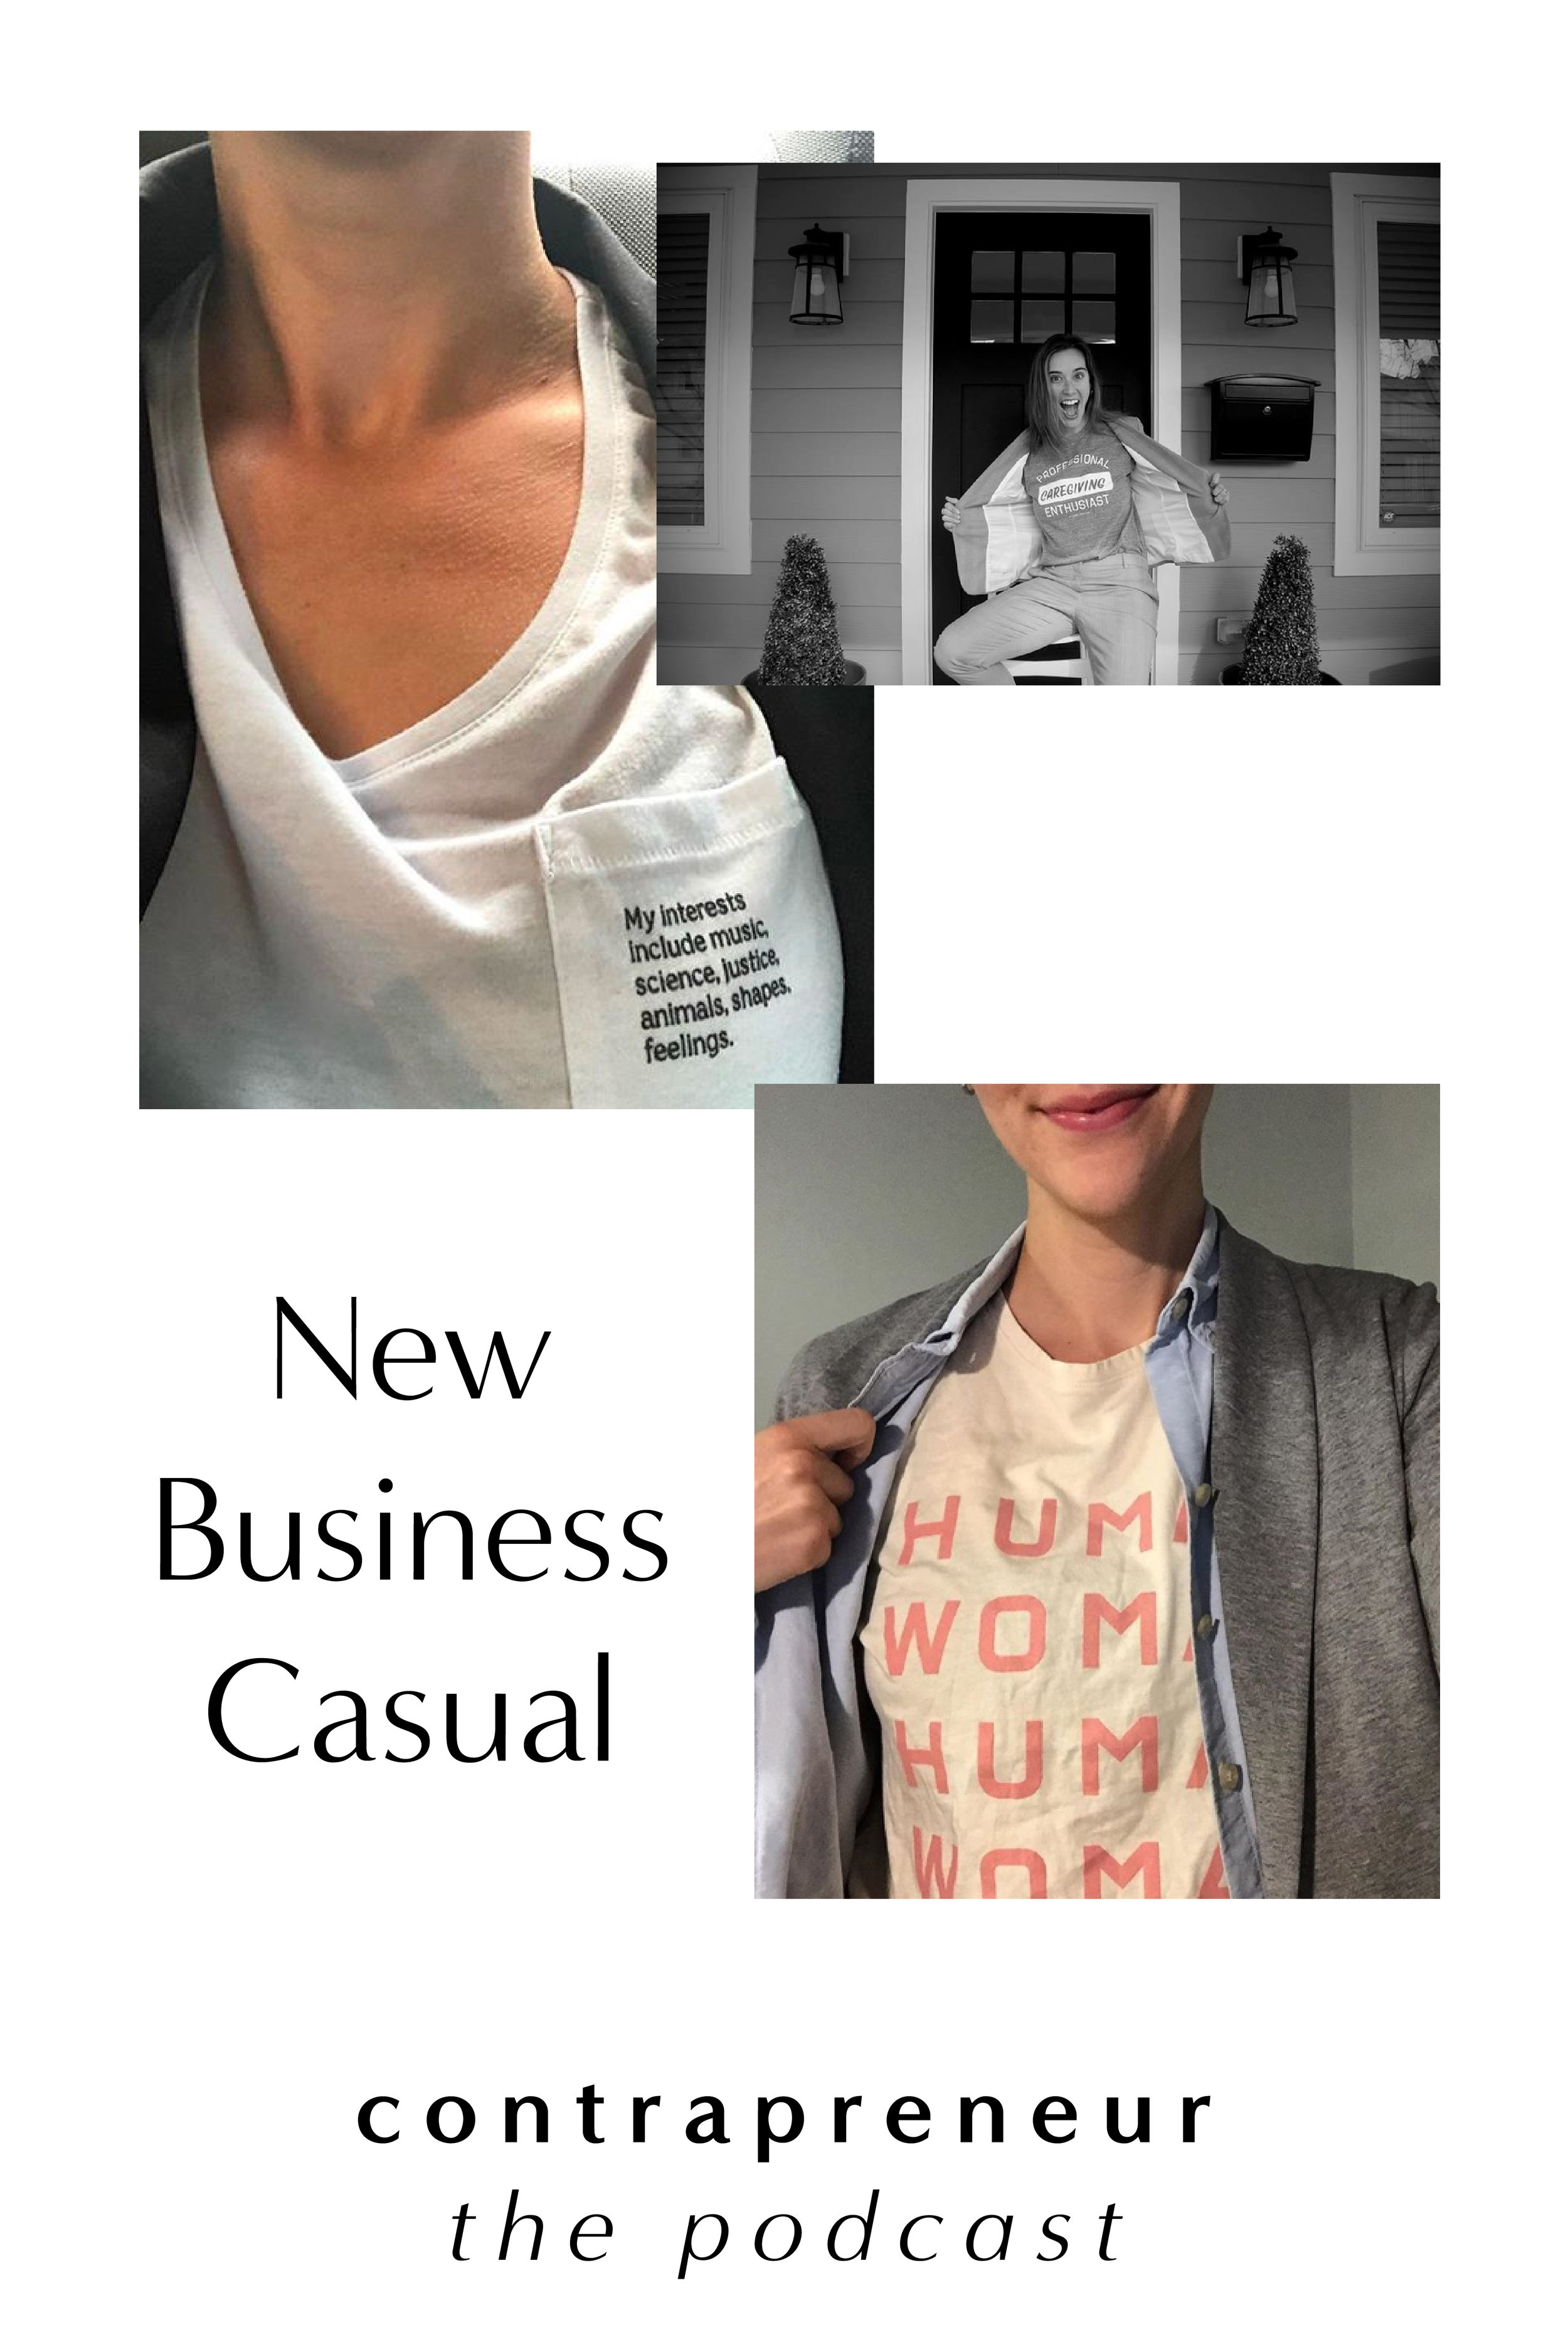 Contrapreneur #NewBusinessCasual